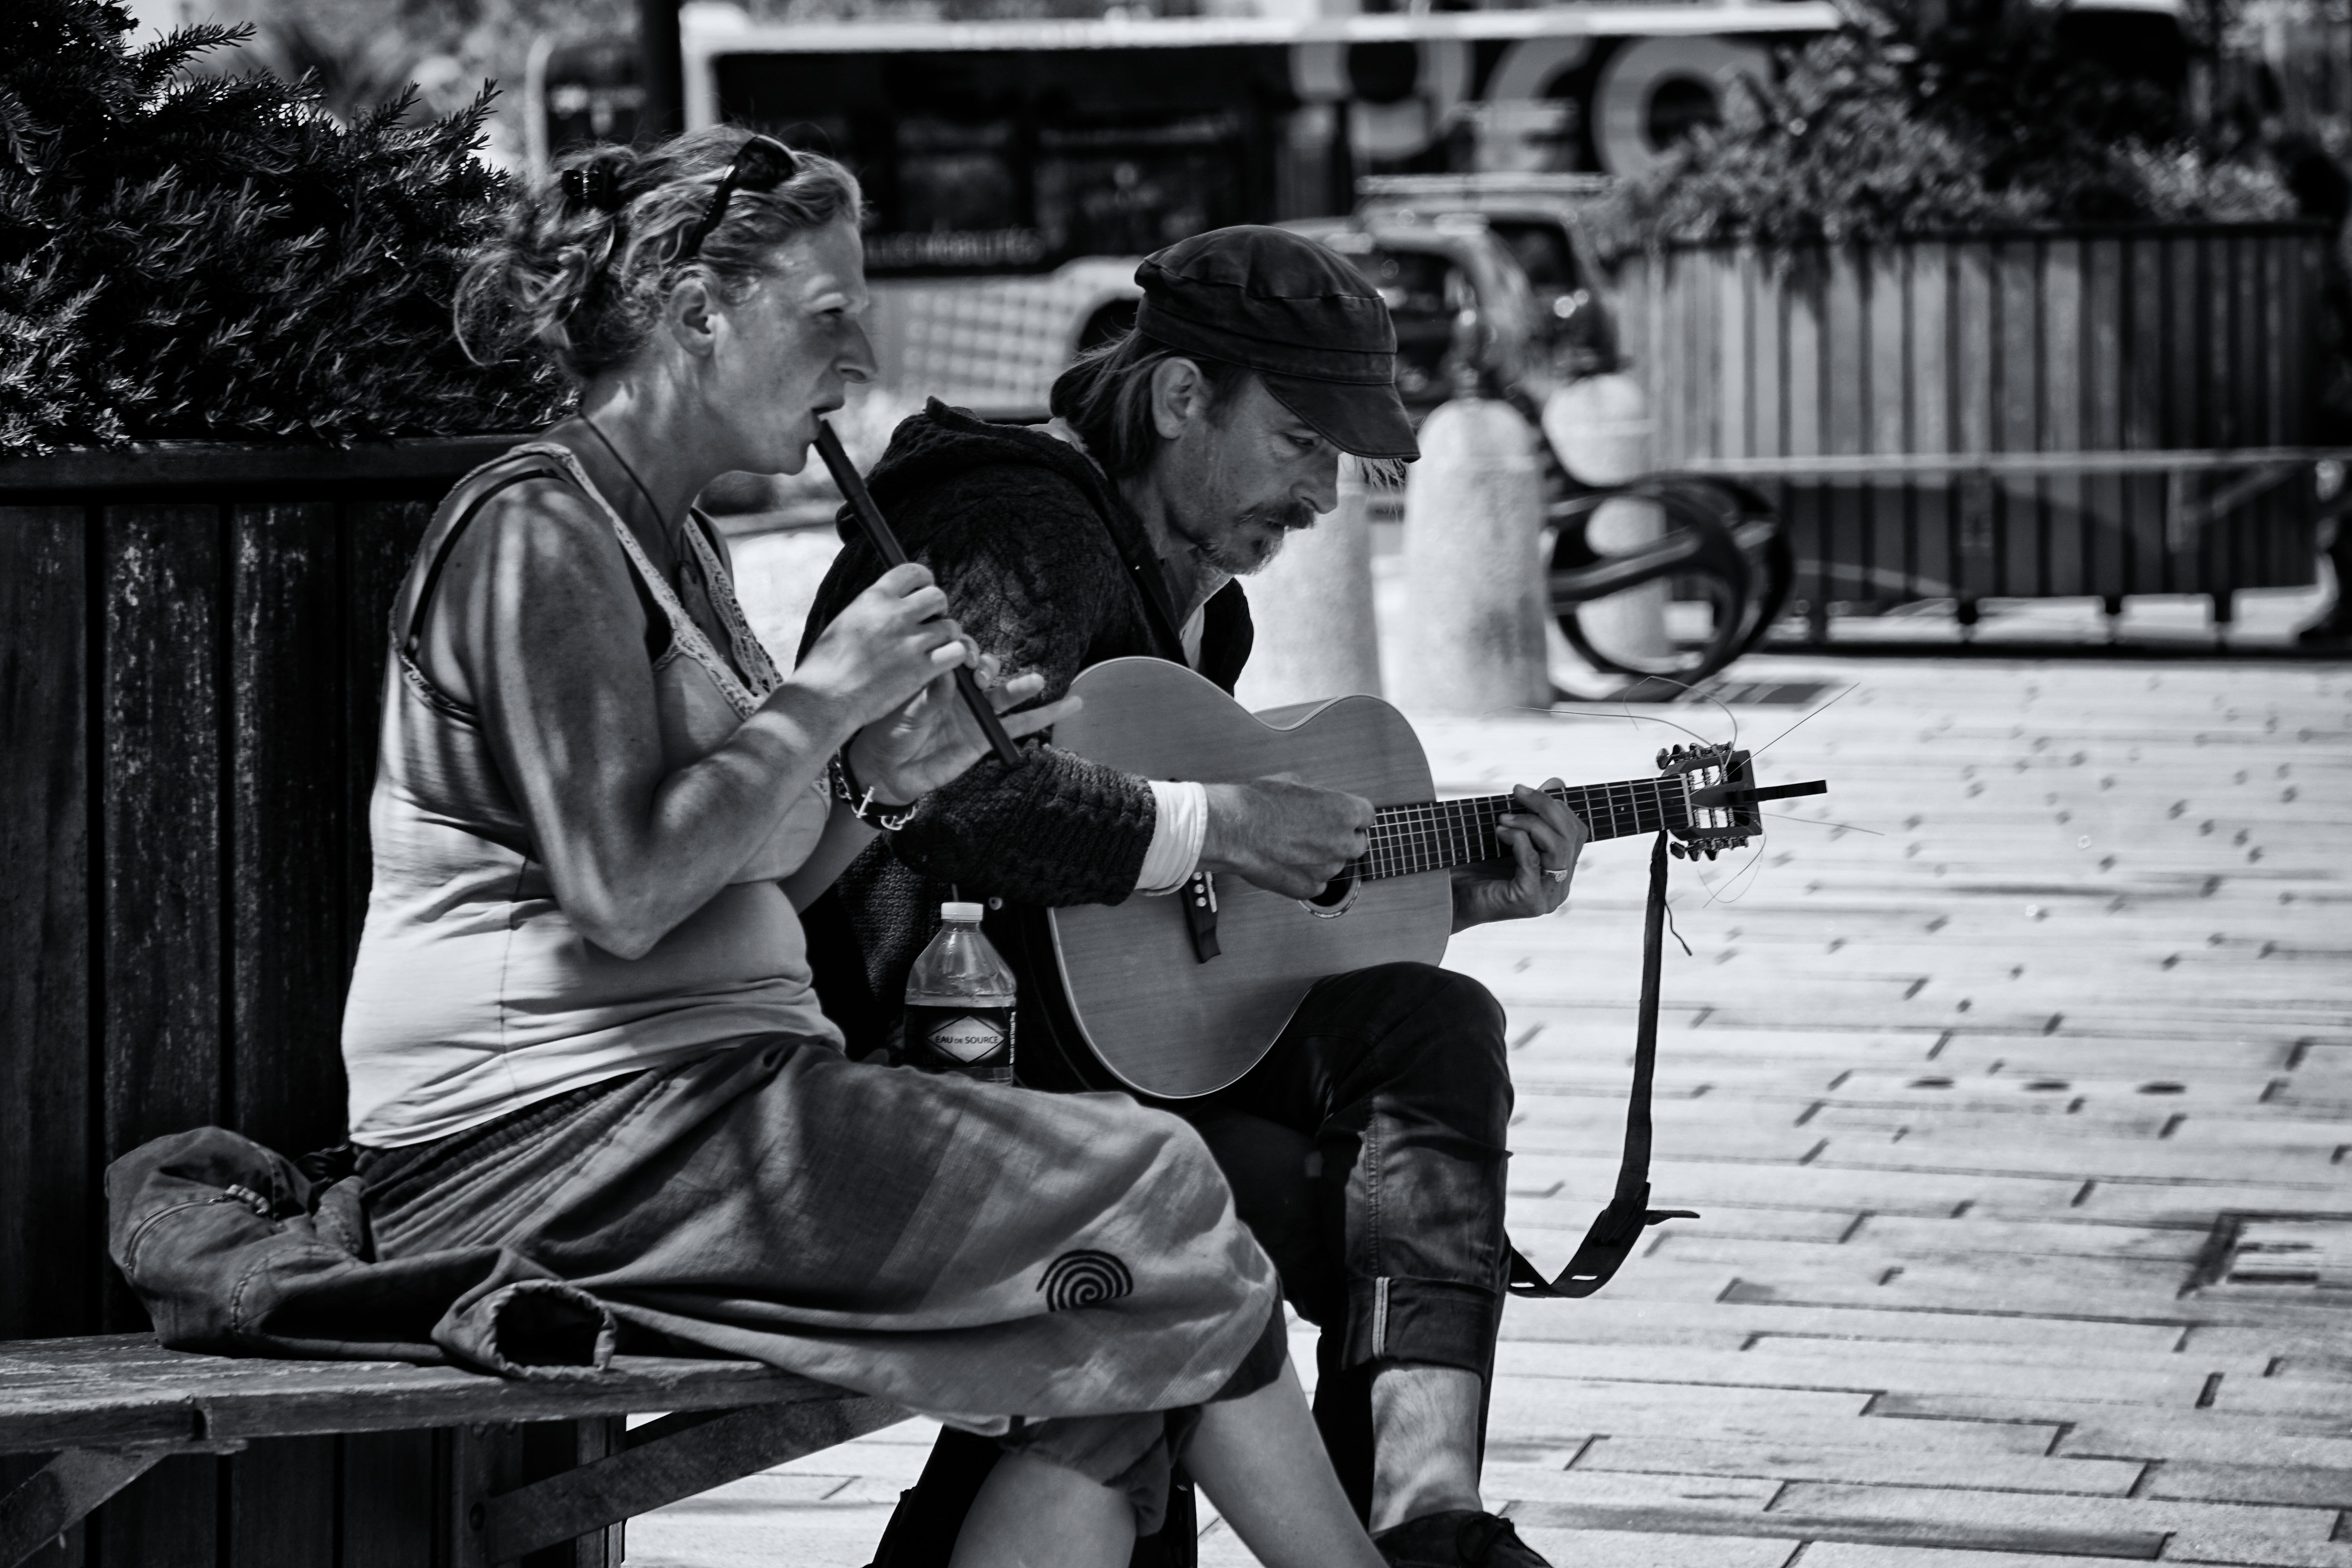 Greyscale Photography of Man and Woman Playing Musical Instruments, Street, People, String instrument, Woman, HQ Photo